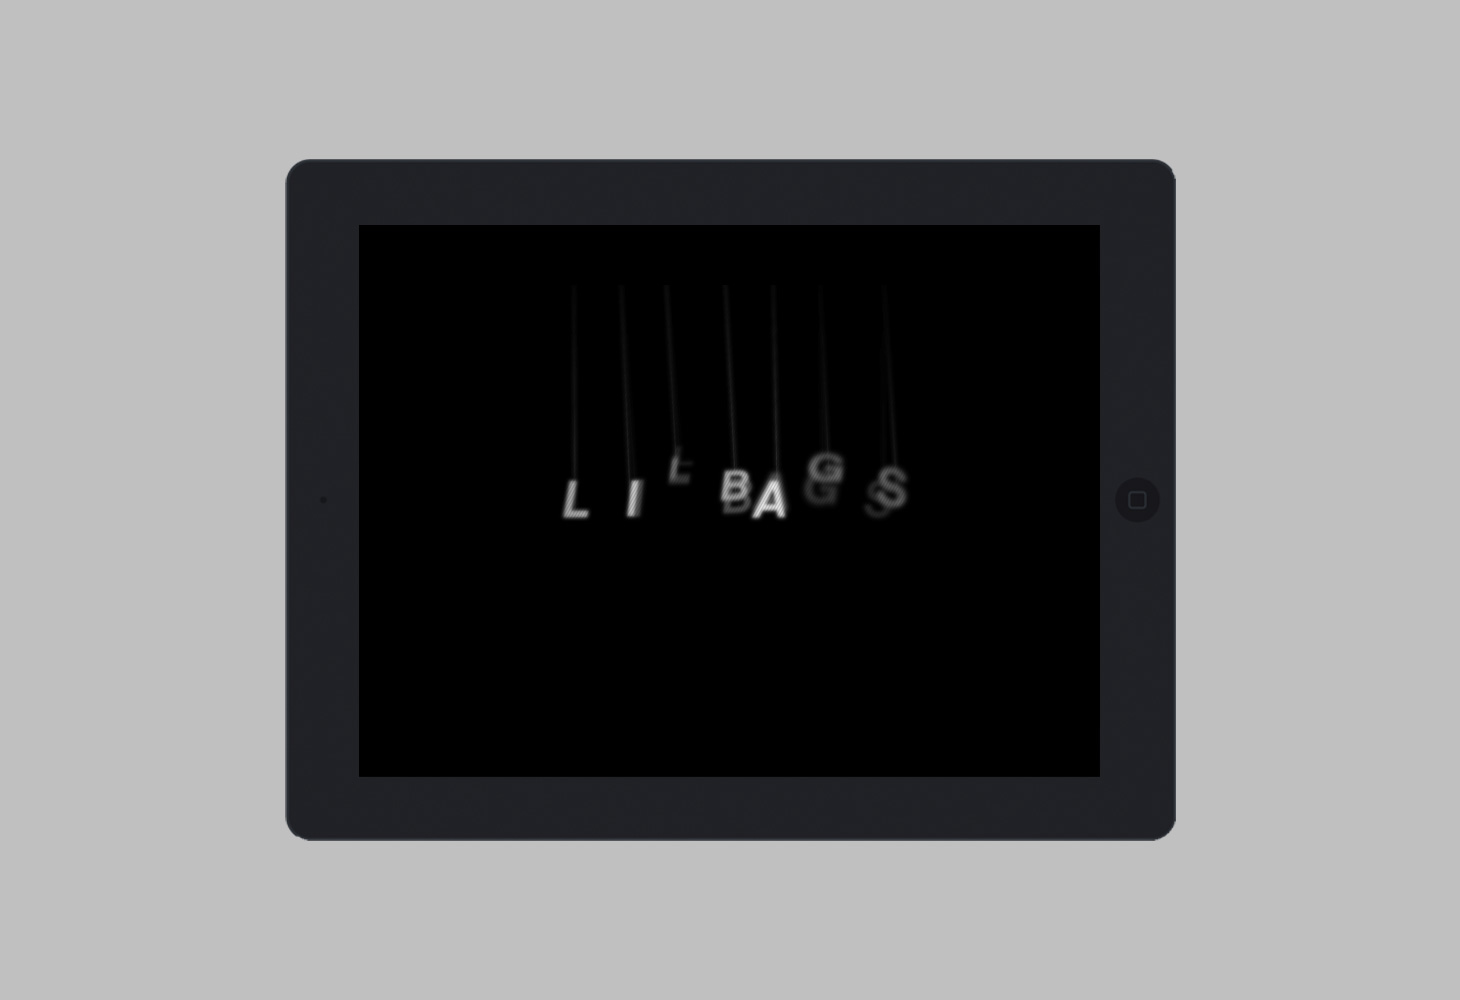 Lilbags - Title - LILBAGS